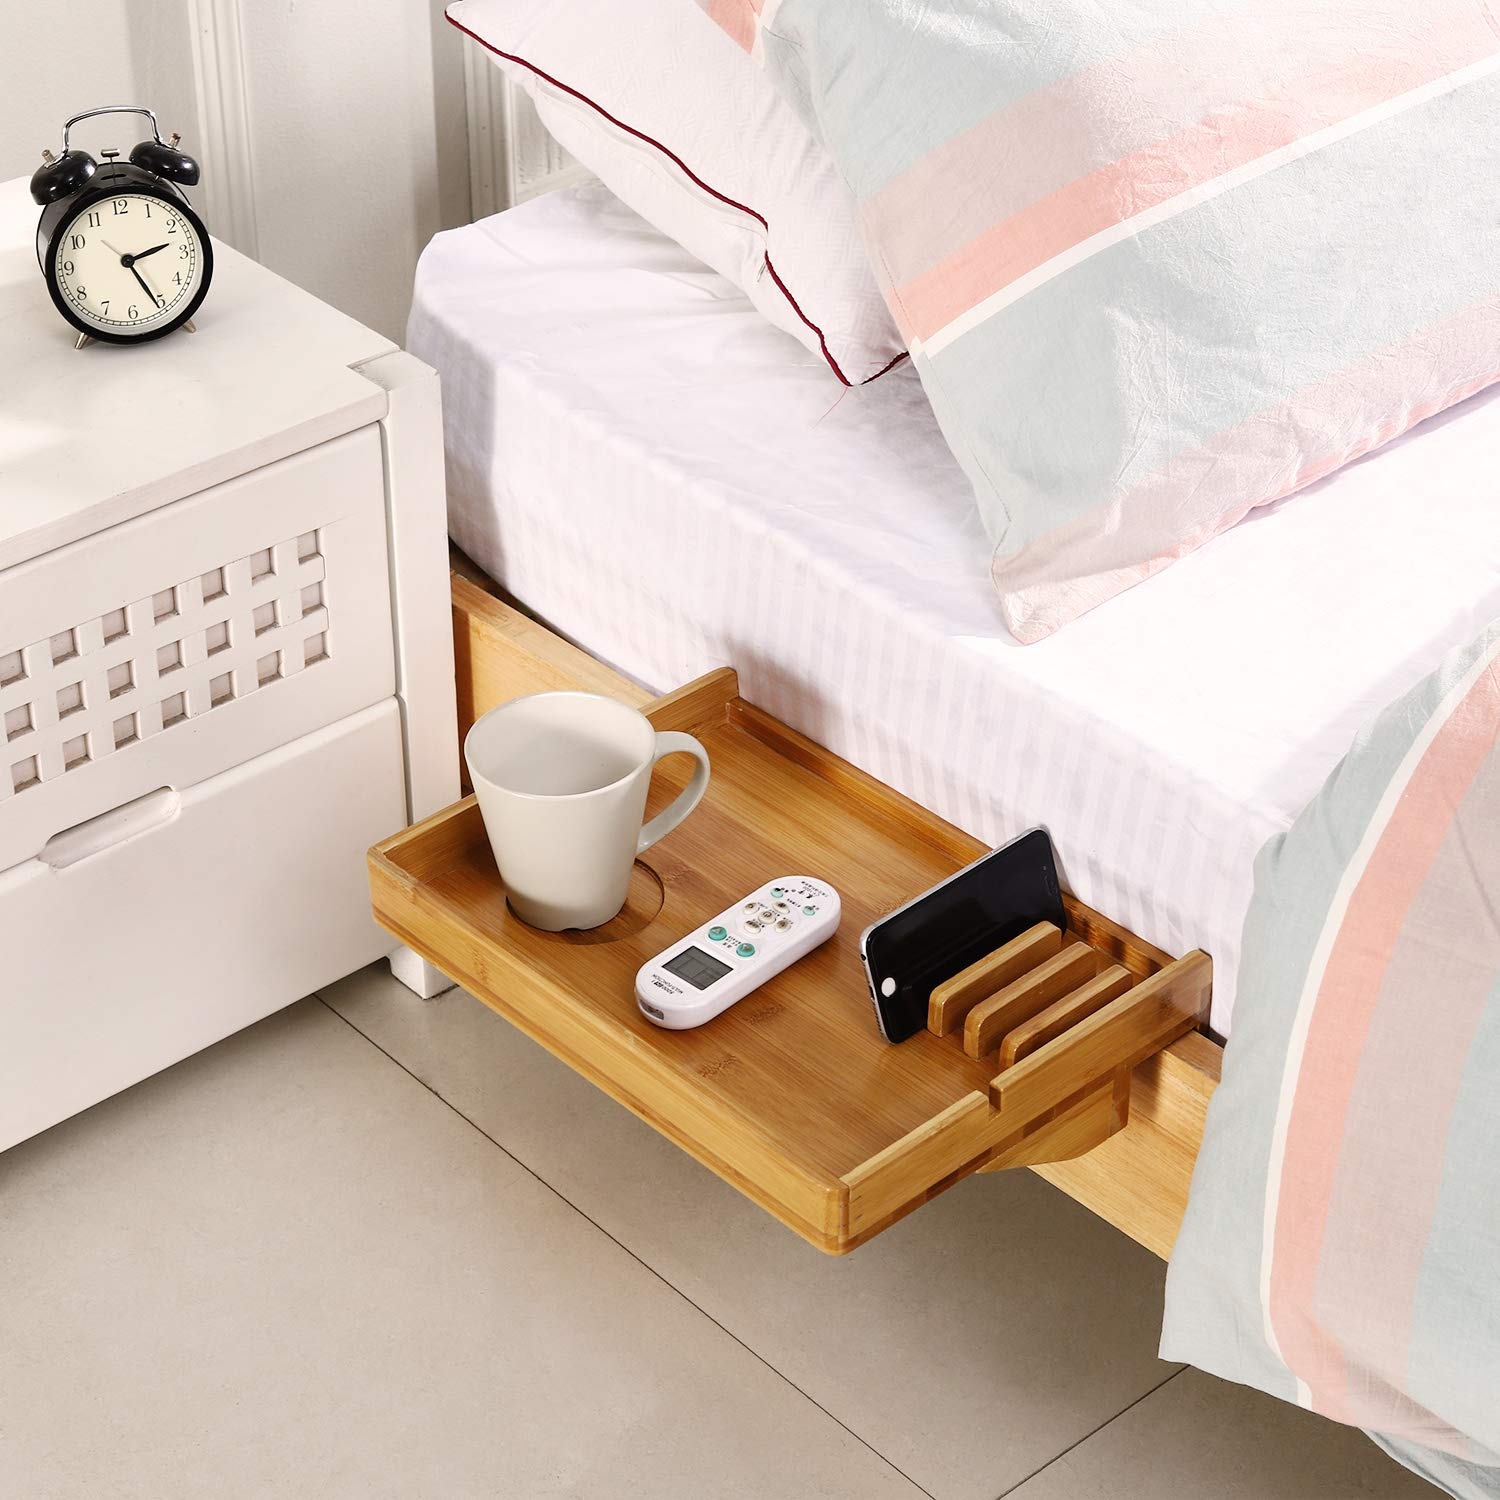 MallBoo Natural Bamboo Simple Bedside Shelf- Used for Children's Beds, Bunk Beds and Dormitory Beds,Organier for Phones, Tablet, Toys, Drink, Clock etc